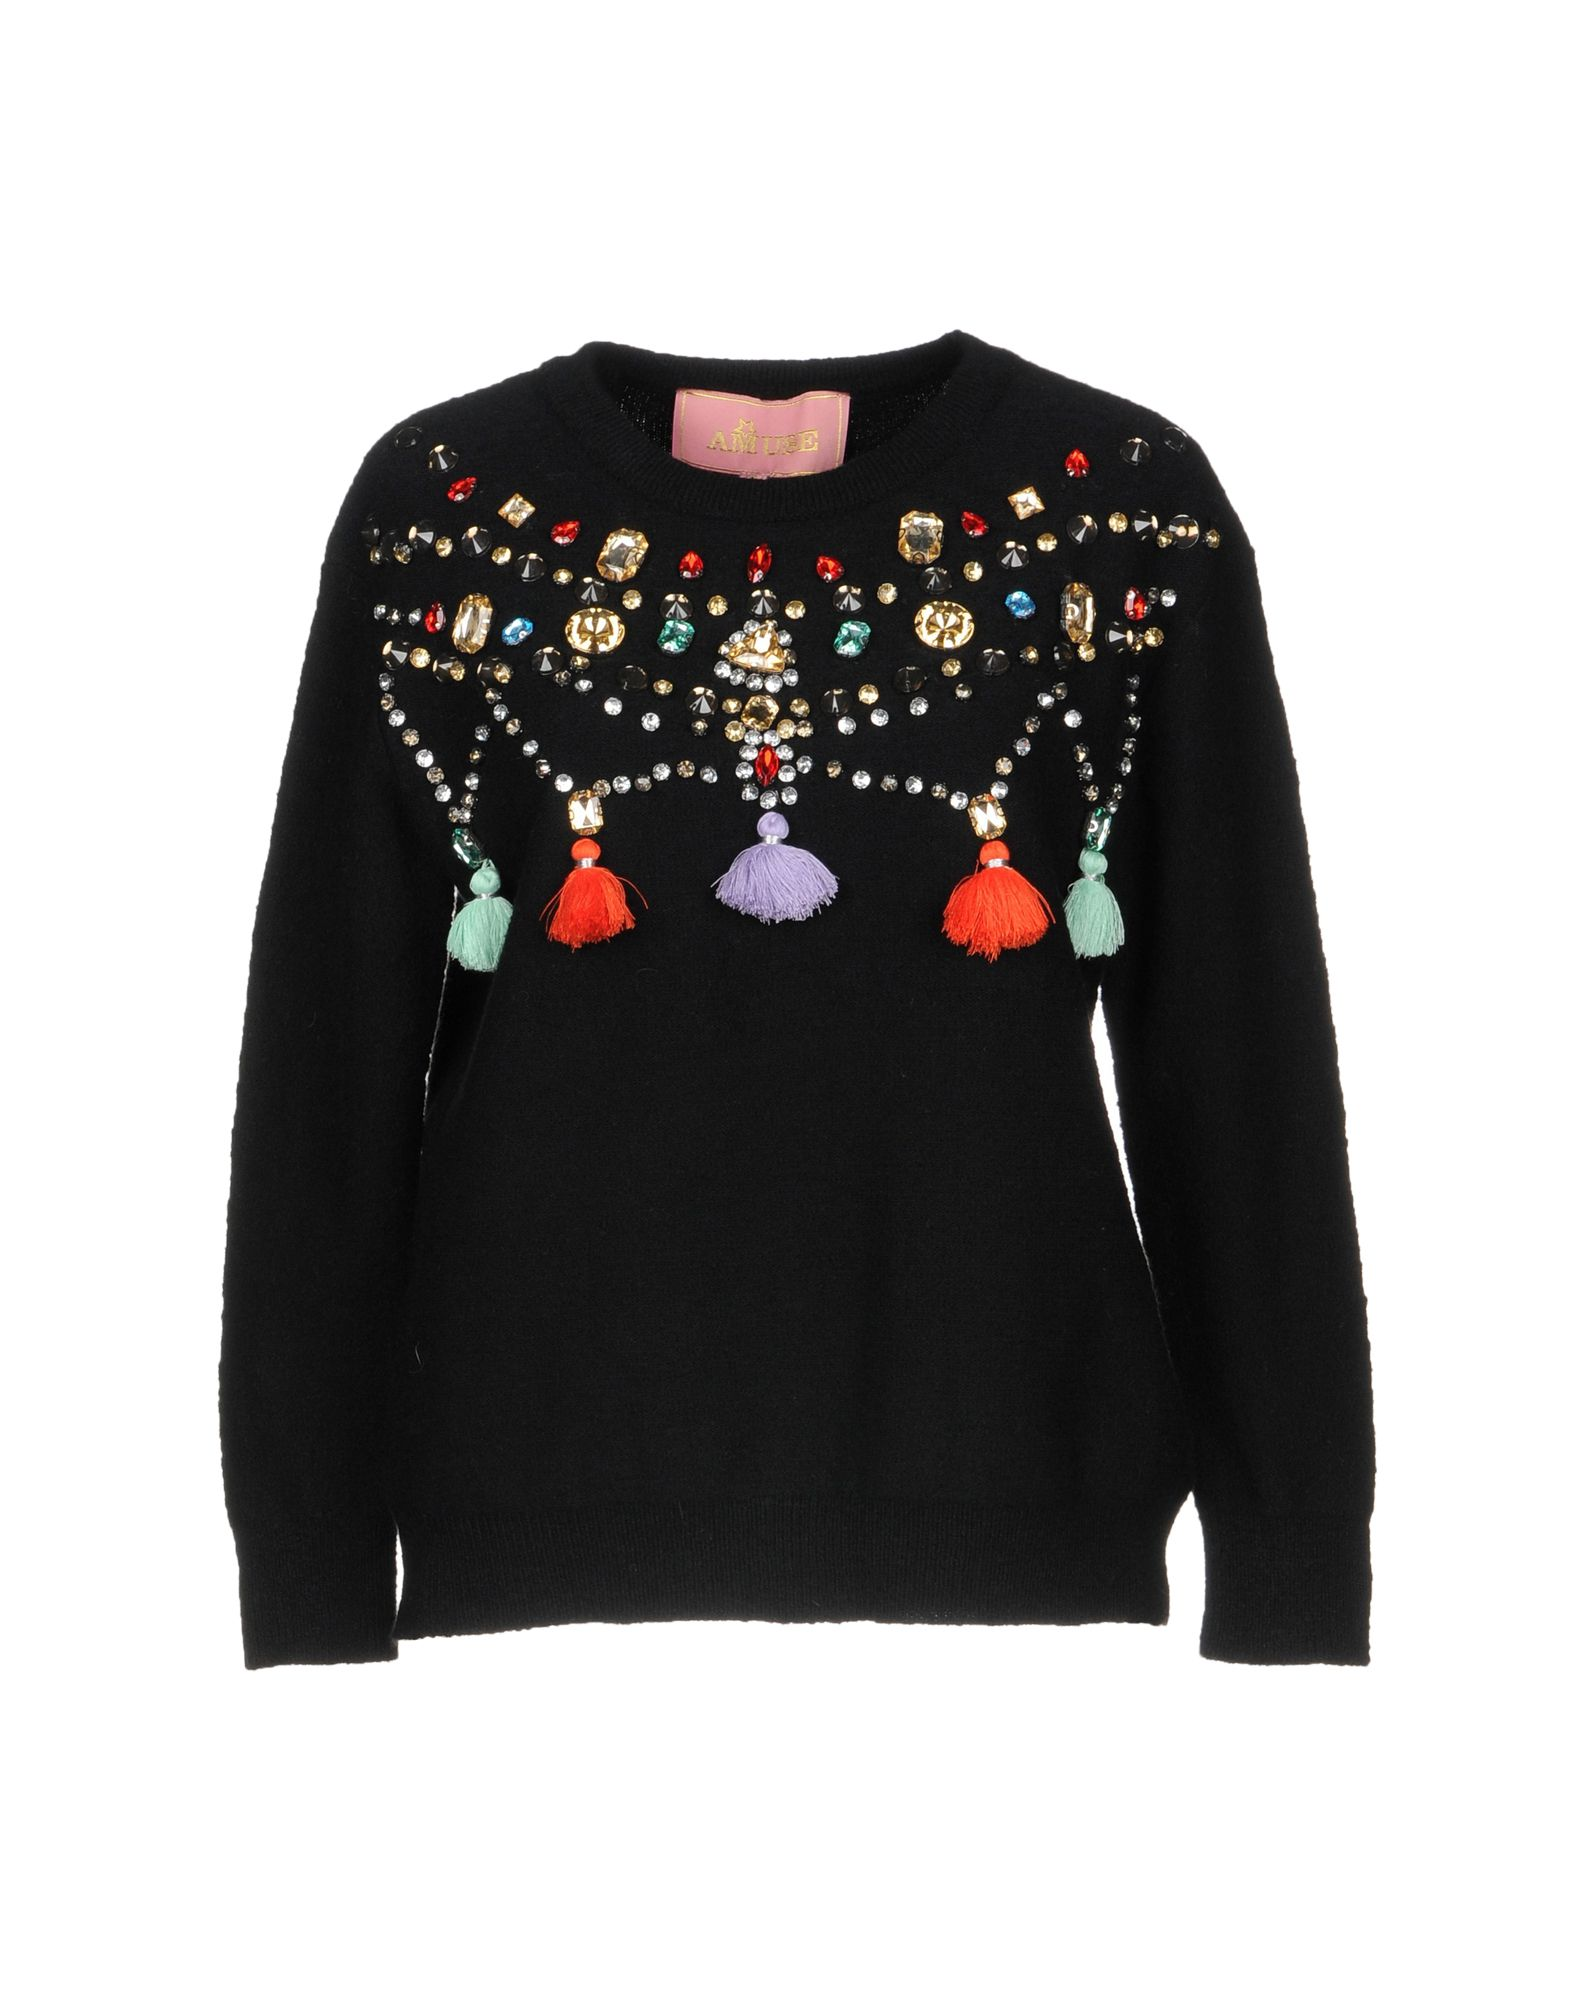 AMUSE Sweater in Black